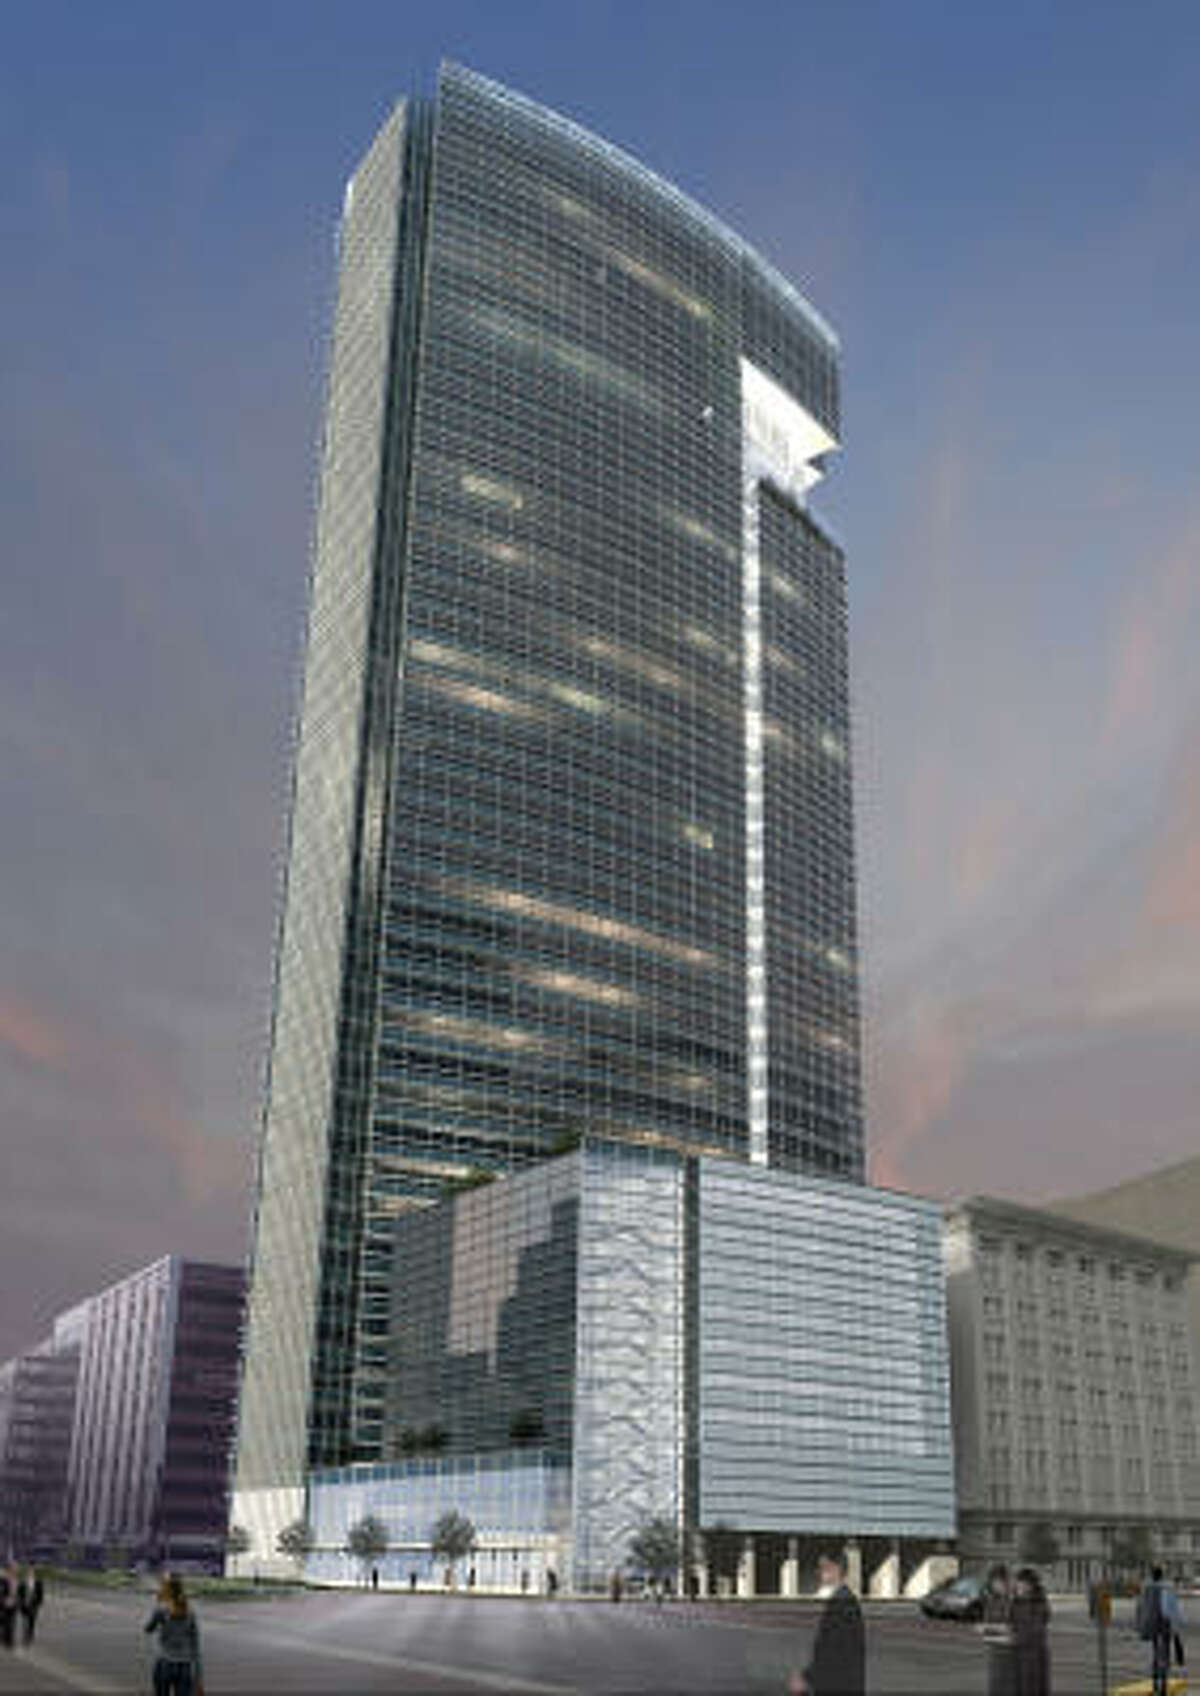 MainPlace will be a 46-story, 1 million-square-foot office building at 811 Main St. between Walker and Rusk, the company said Tuesday.